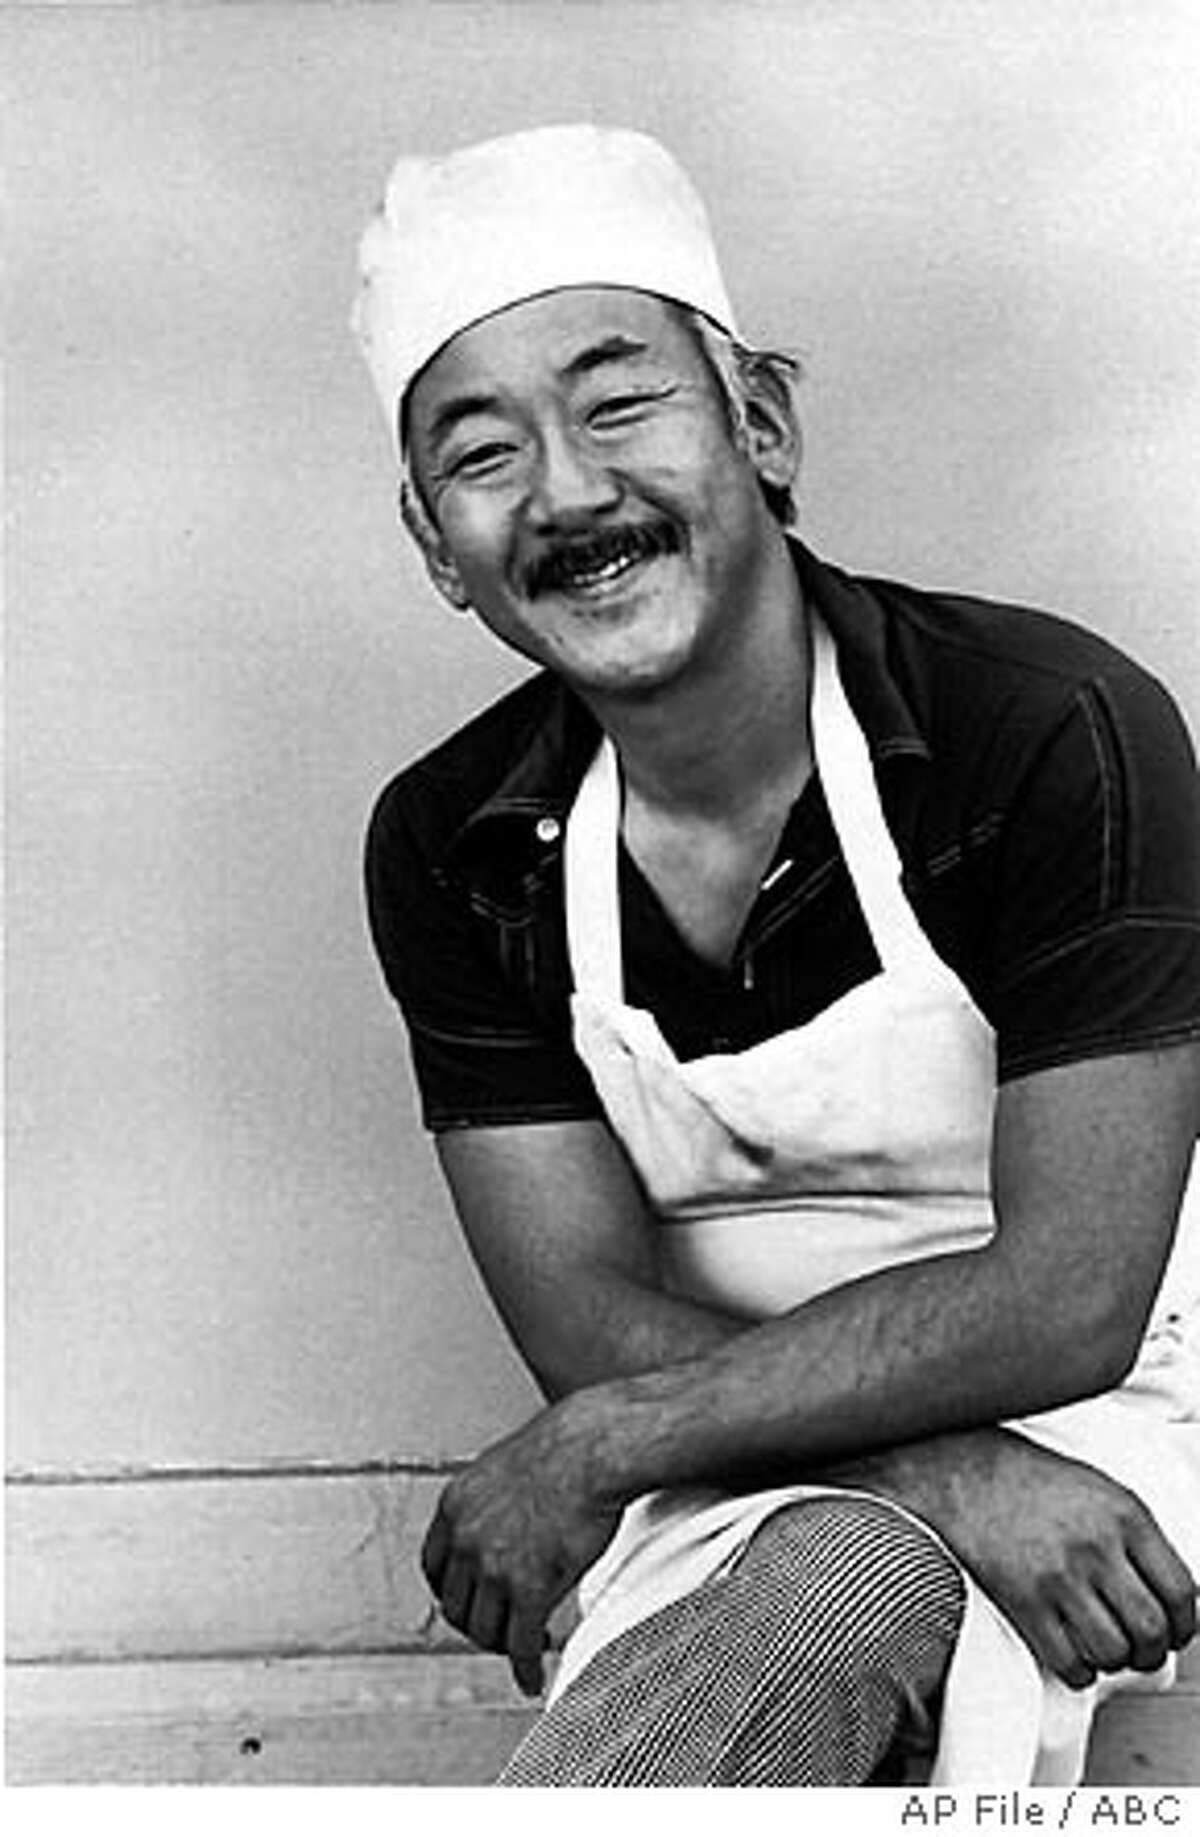 **FILE** In this September 1975 file photo provided by ABC, Pat Morita poses as the character